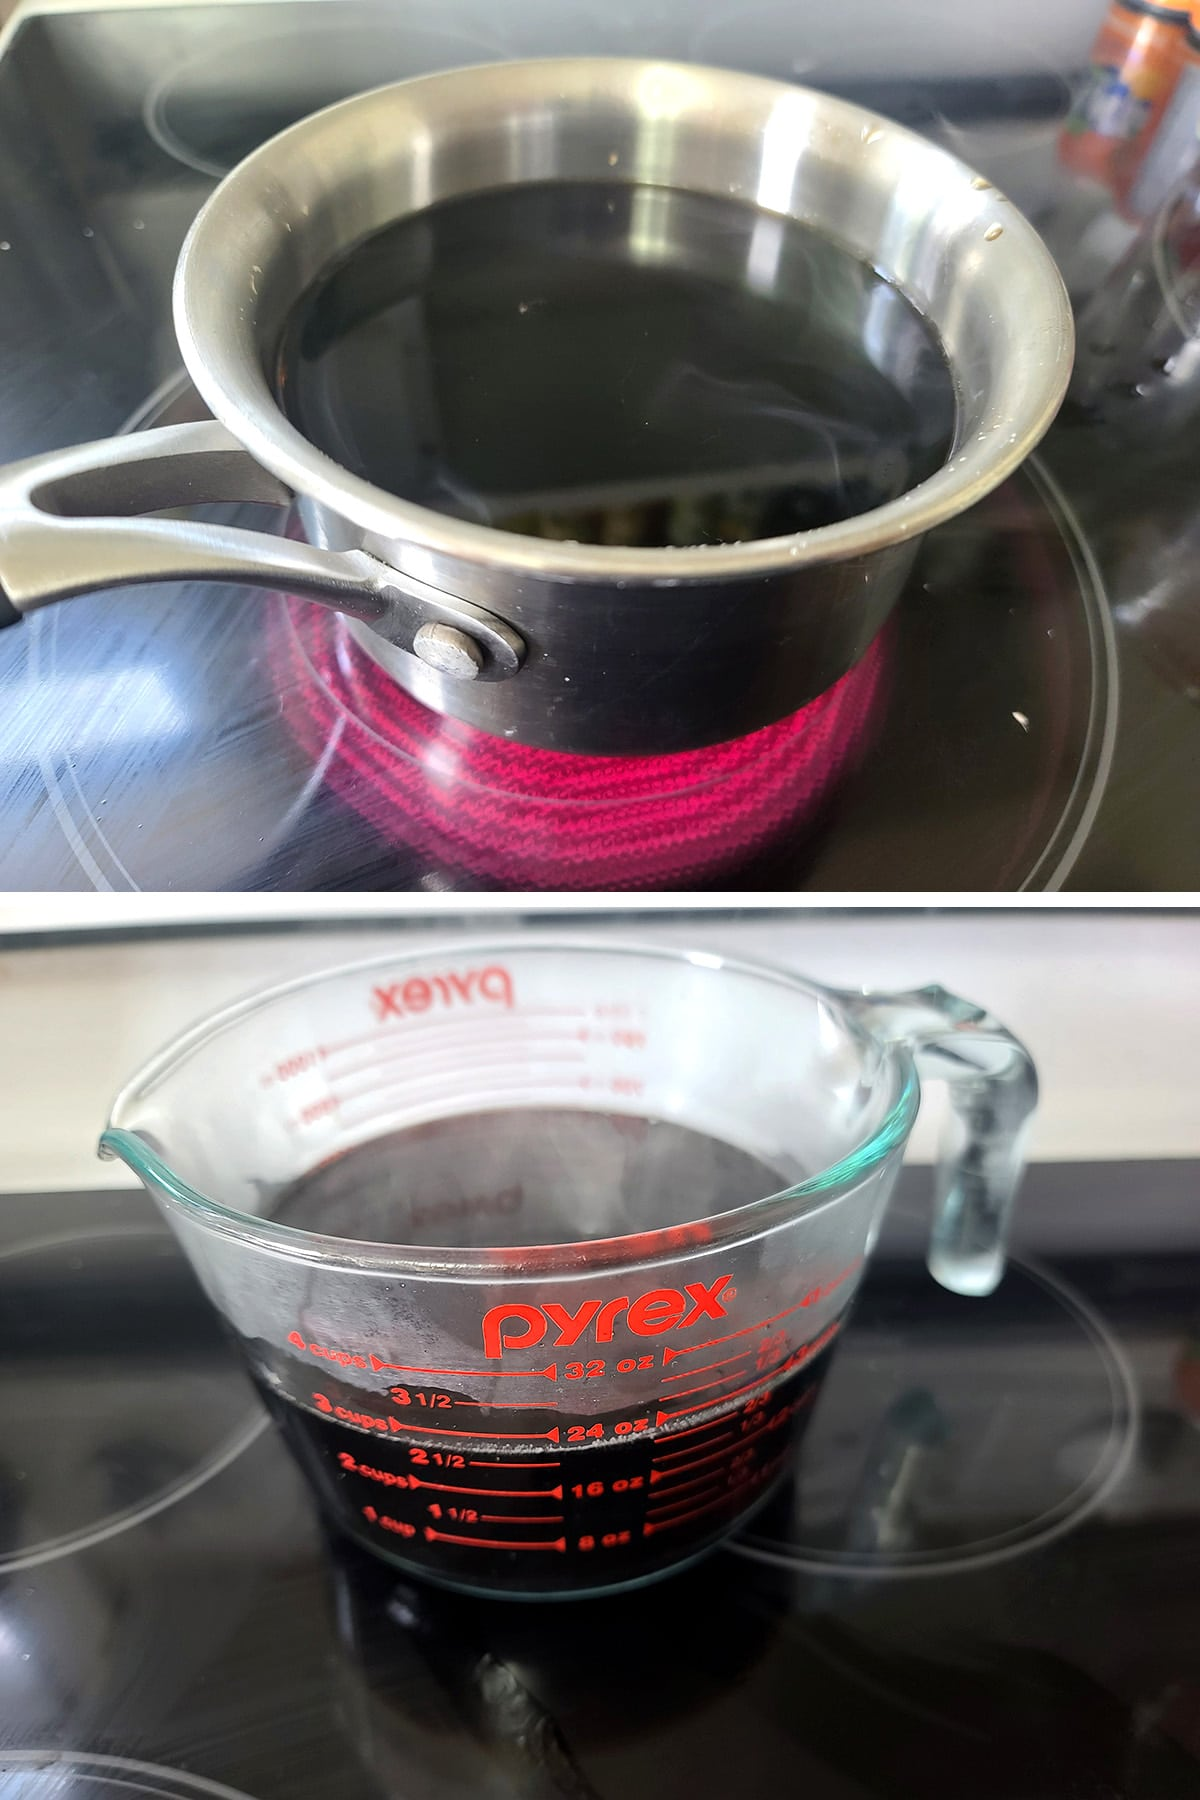 A two part image showing flat root beer in a small pot, then a large glass measuring up with that root beer in it, steaming.